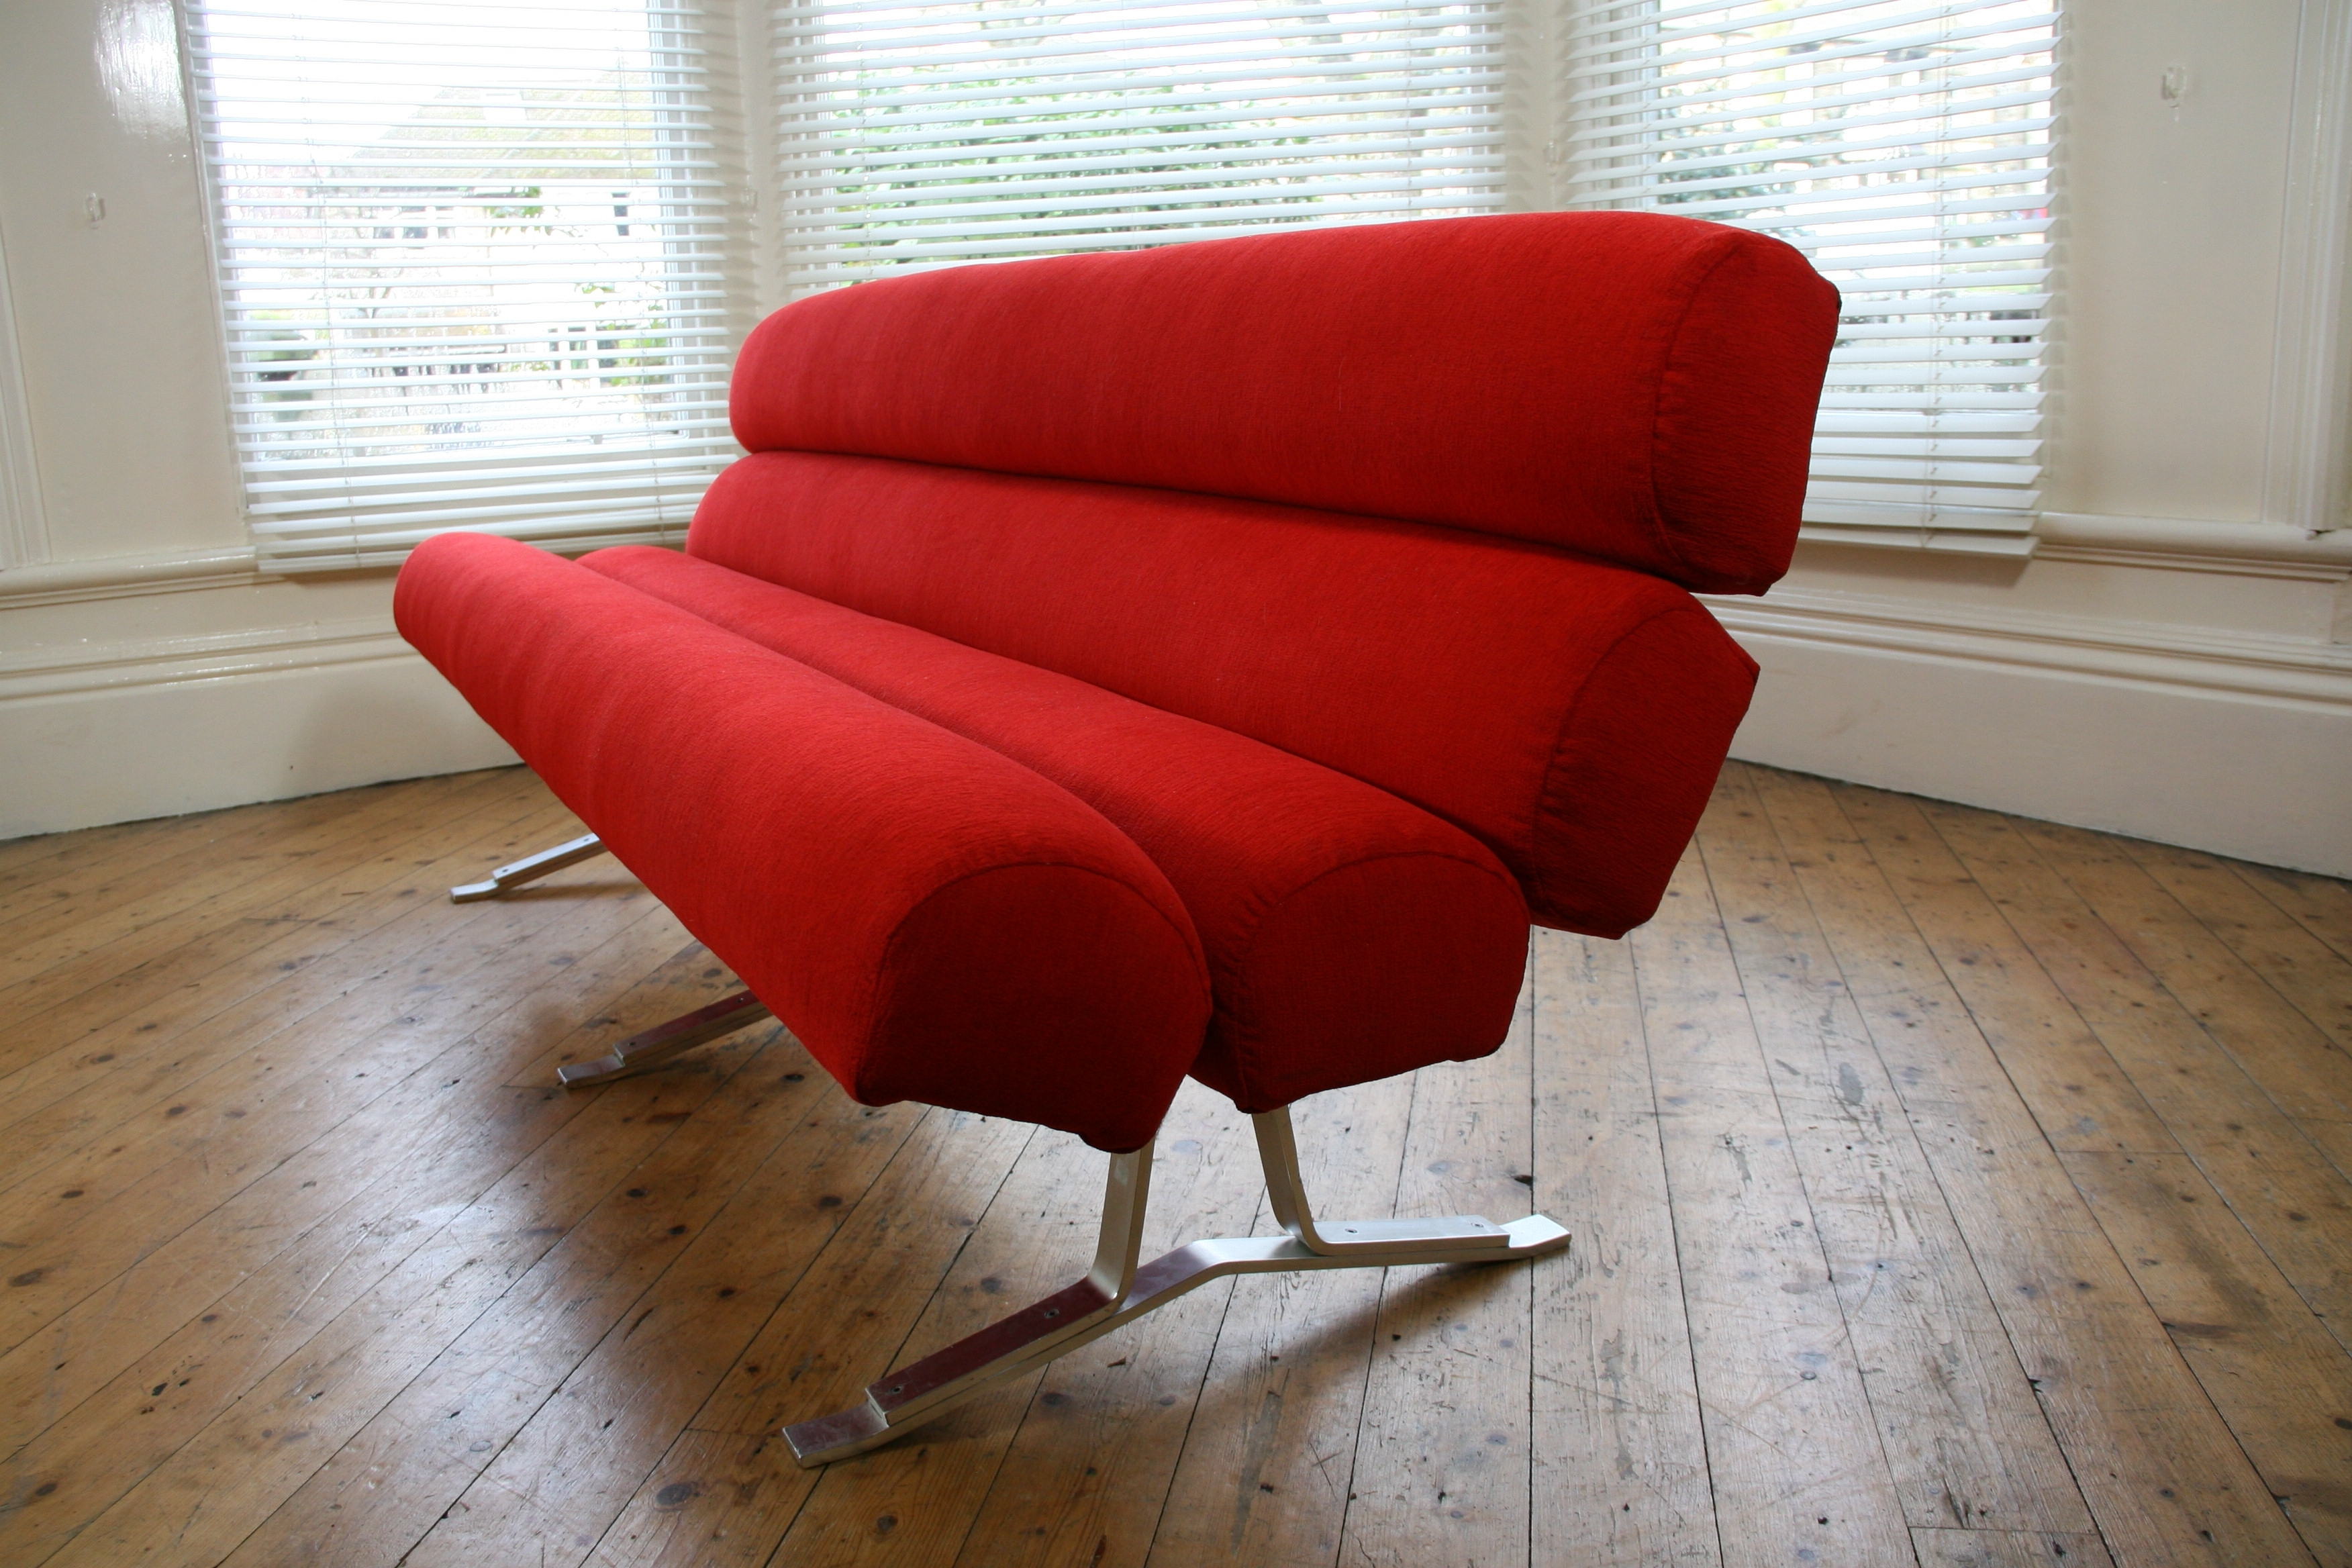 Preferred Retro Sofas And Chairs With Regard To Modern Style Furniture Retro With (View 4 of 15)